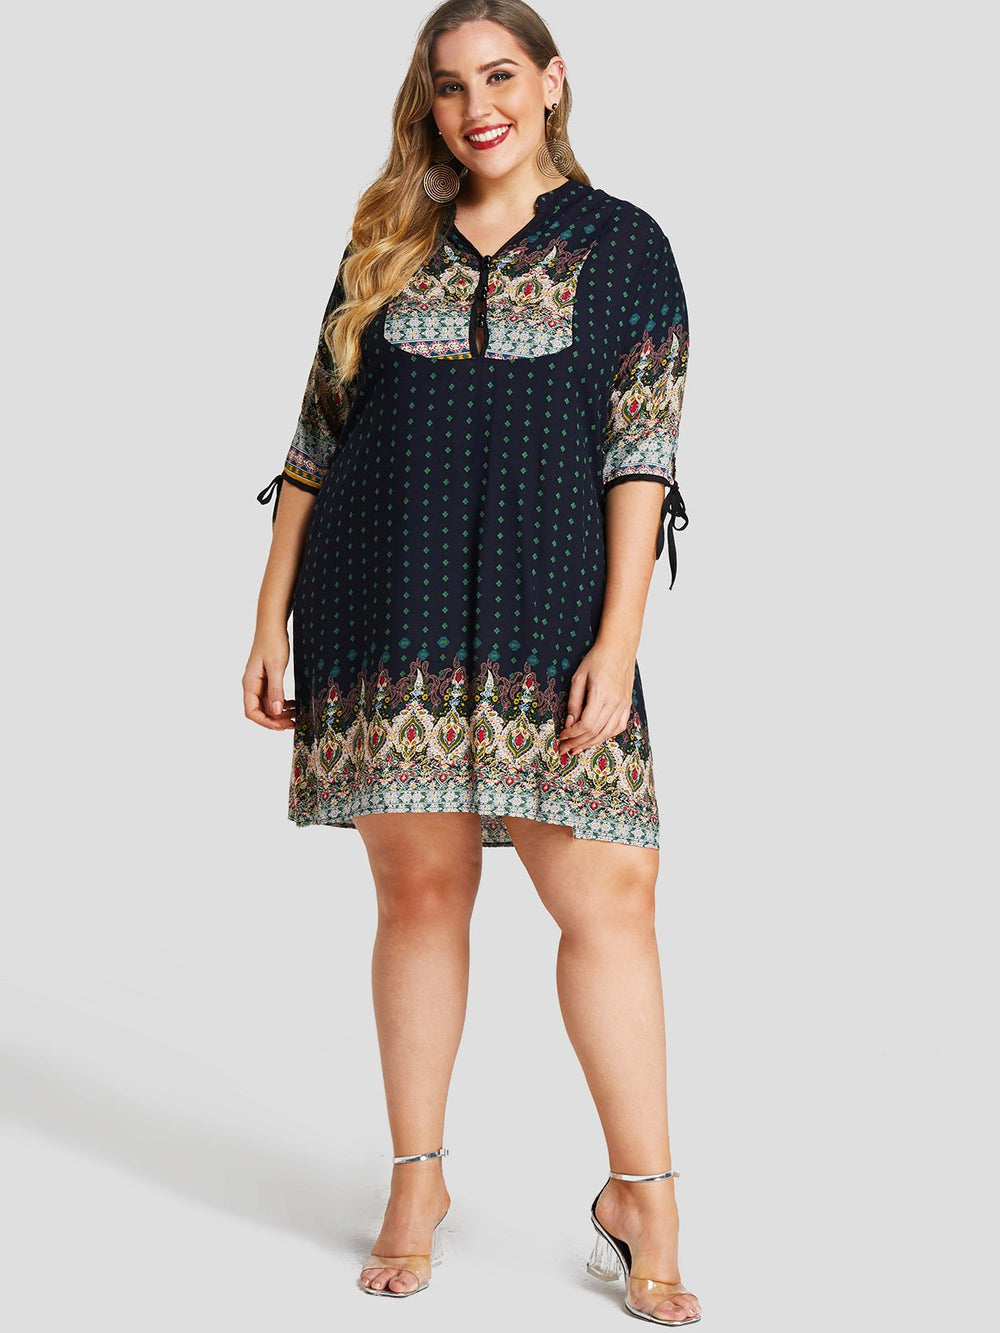 Where To Find Cute Plus Size Dresses